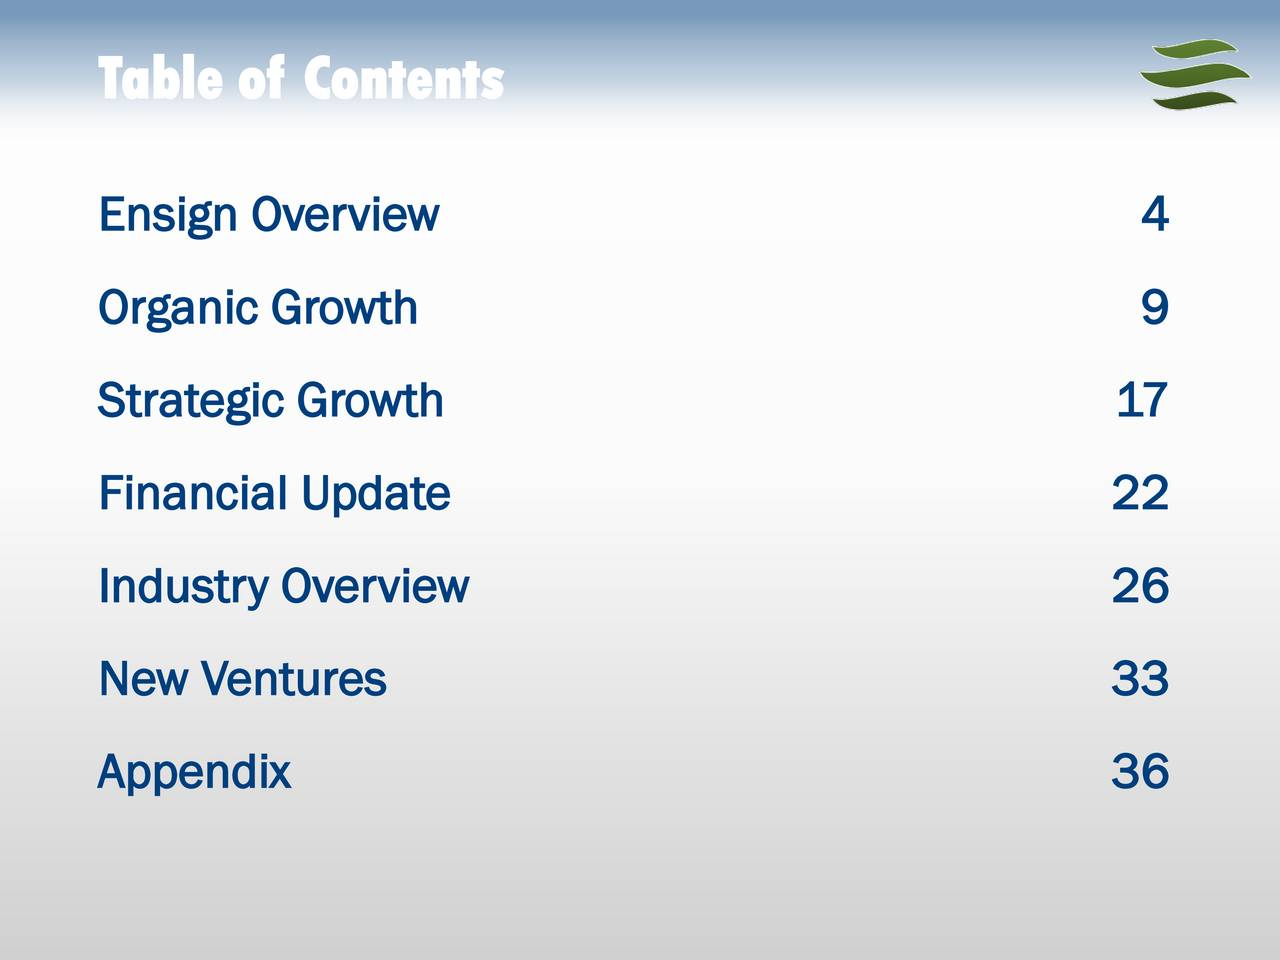 Ensign Overview 4 Organic Growth 9 Strategic Growth 17 Financial Update 22 Industry Overview 26 New Ventures 33 Appendix 36